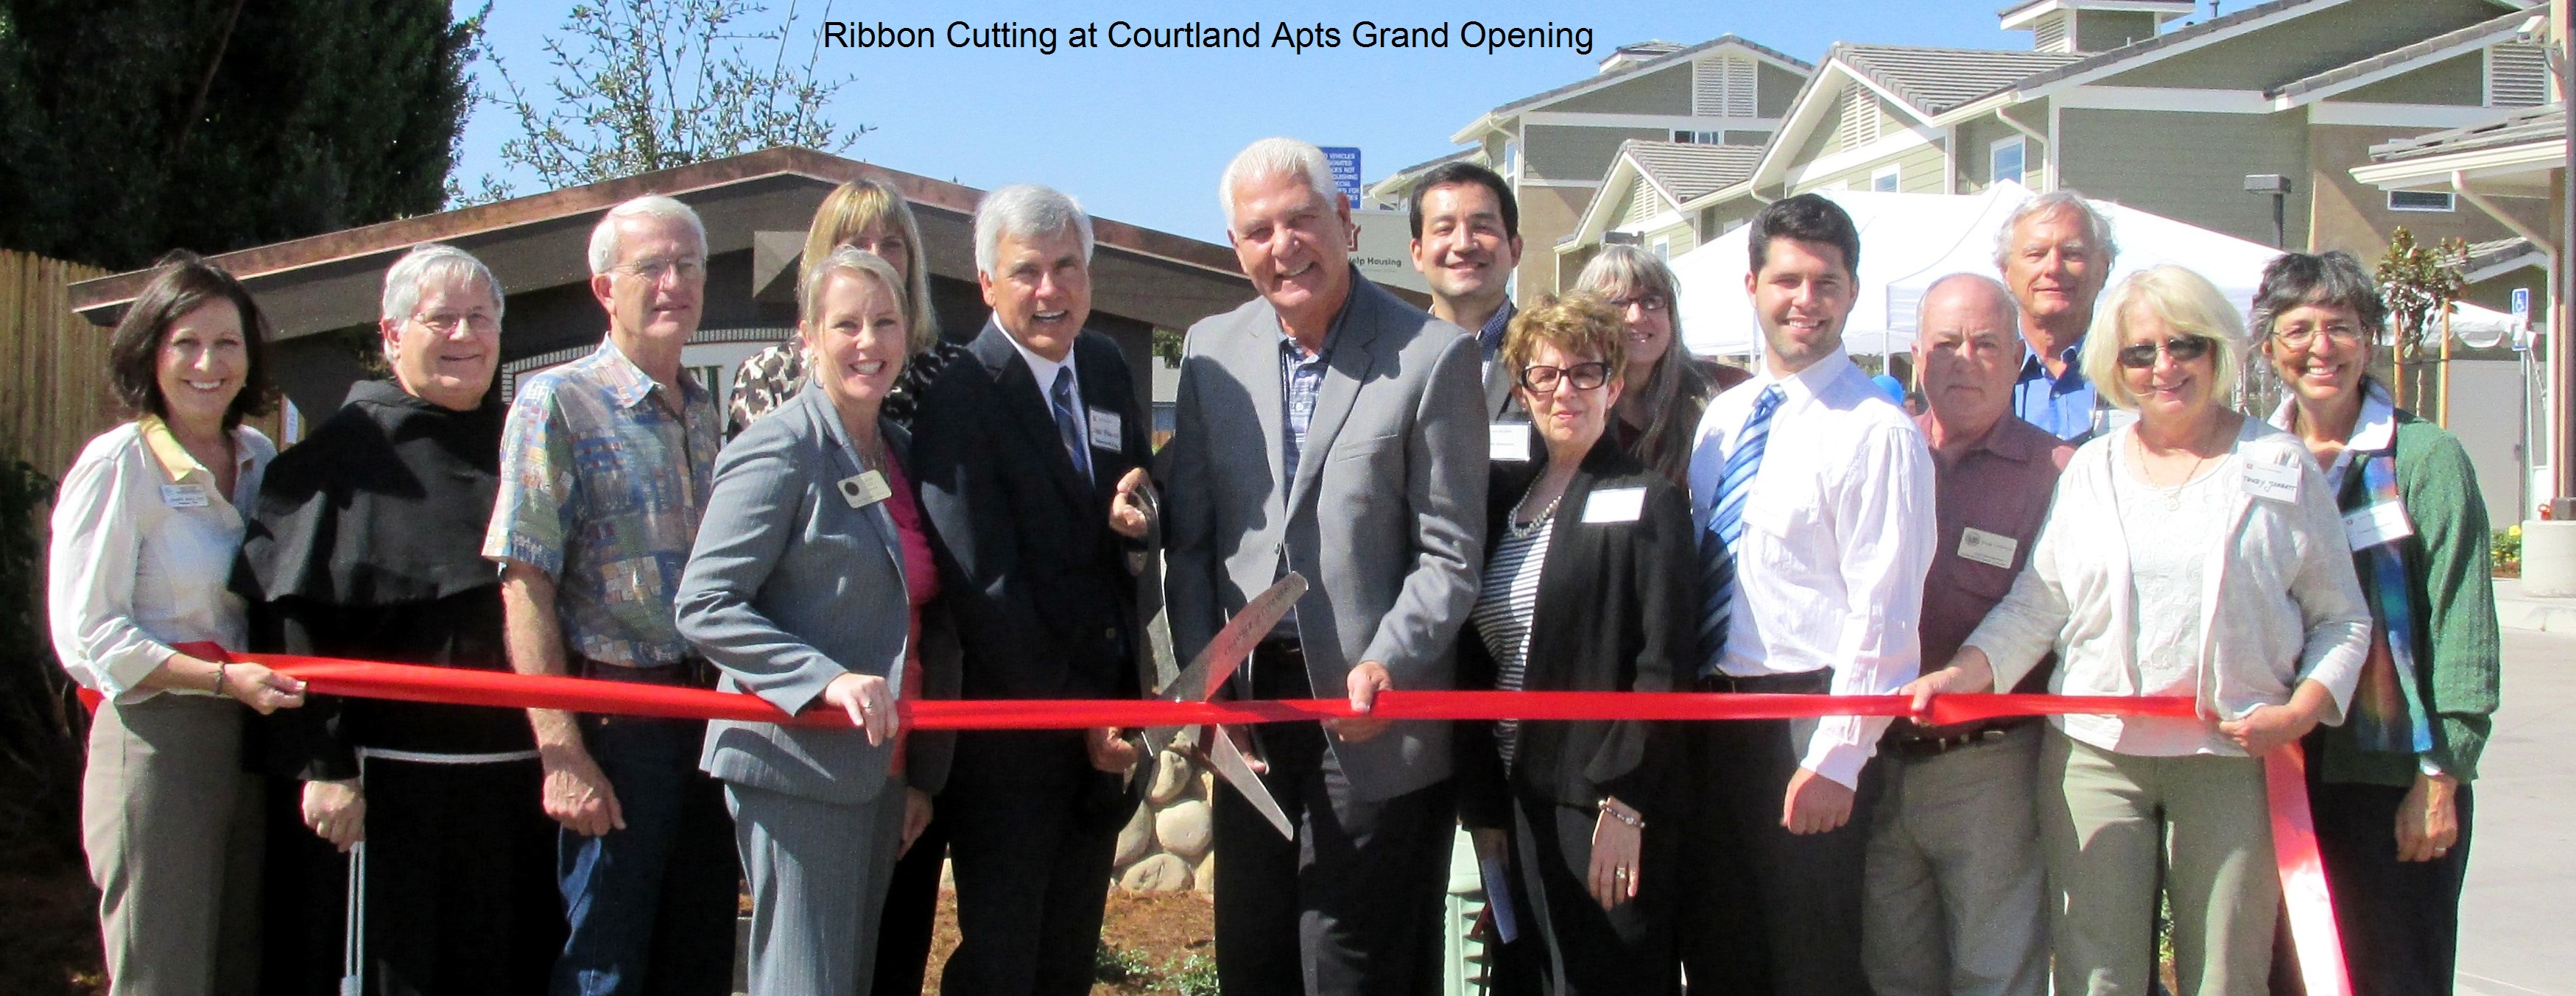 Ribbon Cutting at Courtland Apartments Grand Opening